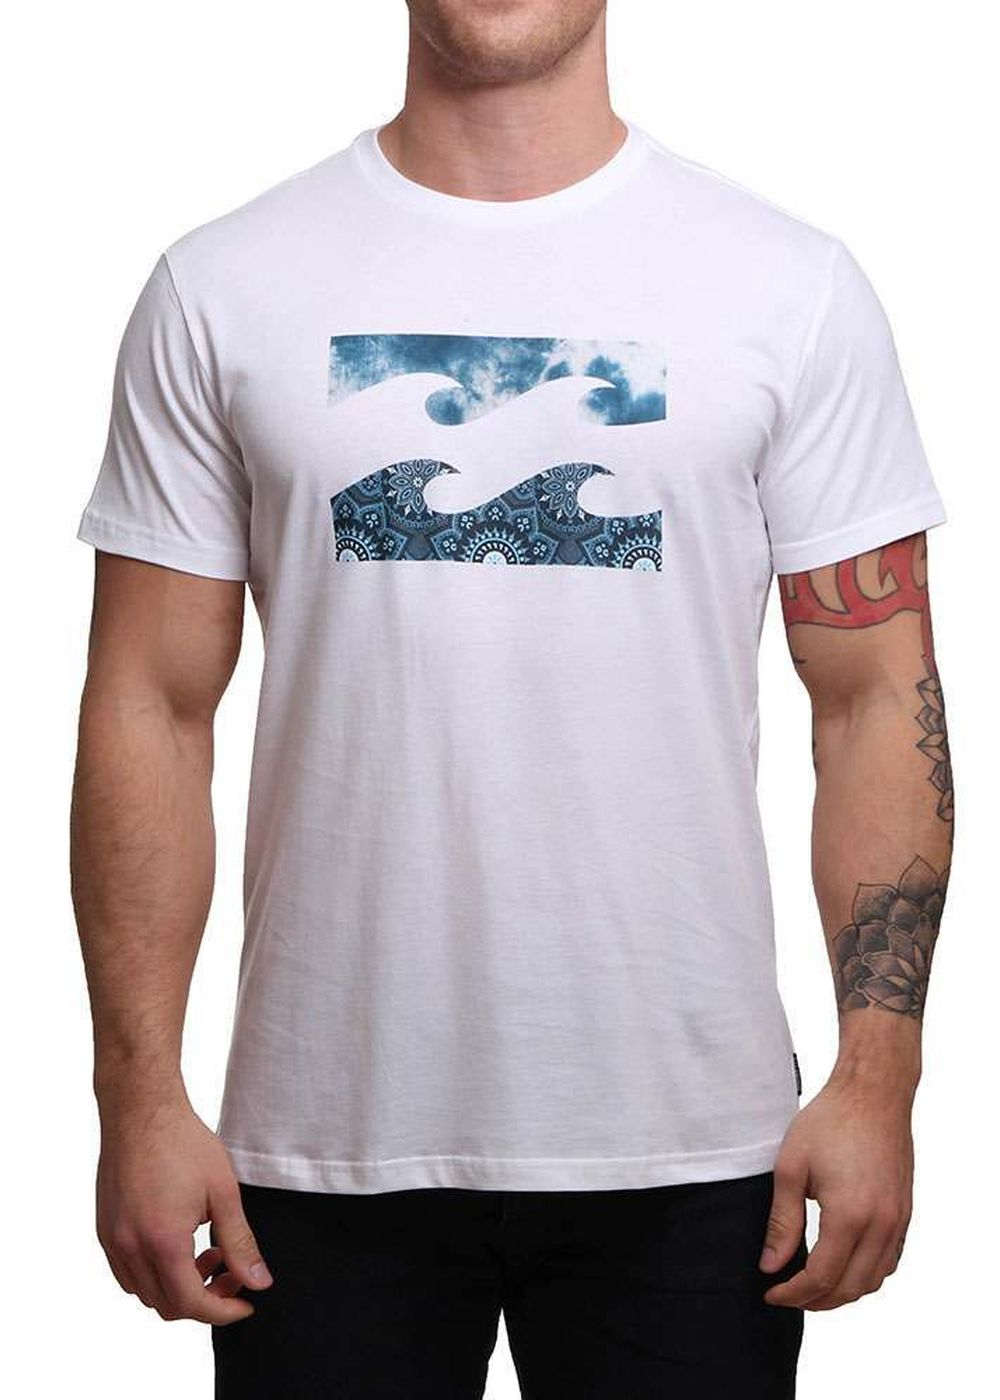 billabong-team-wave-tee-white